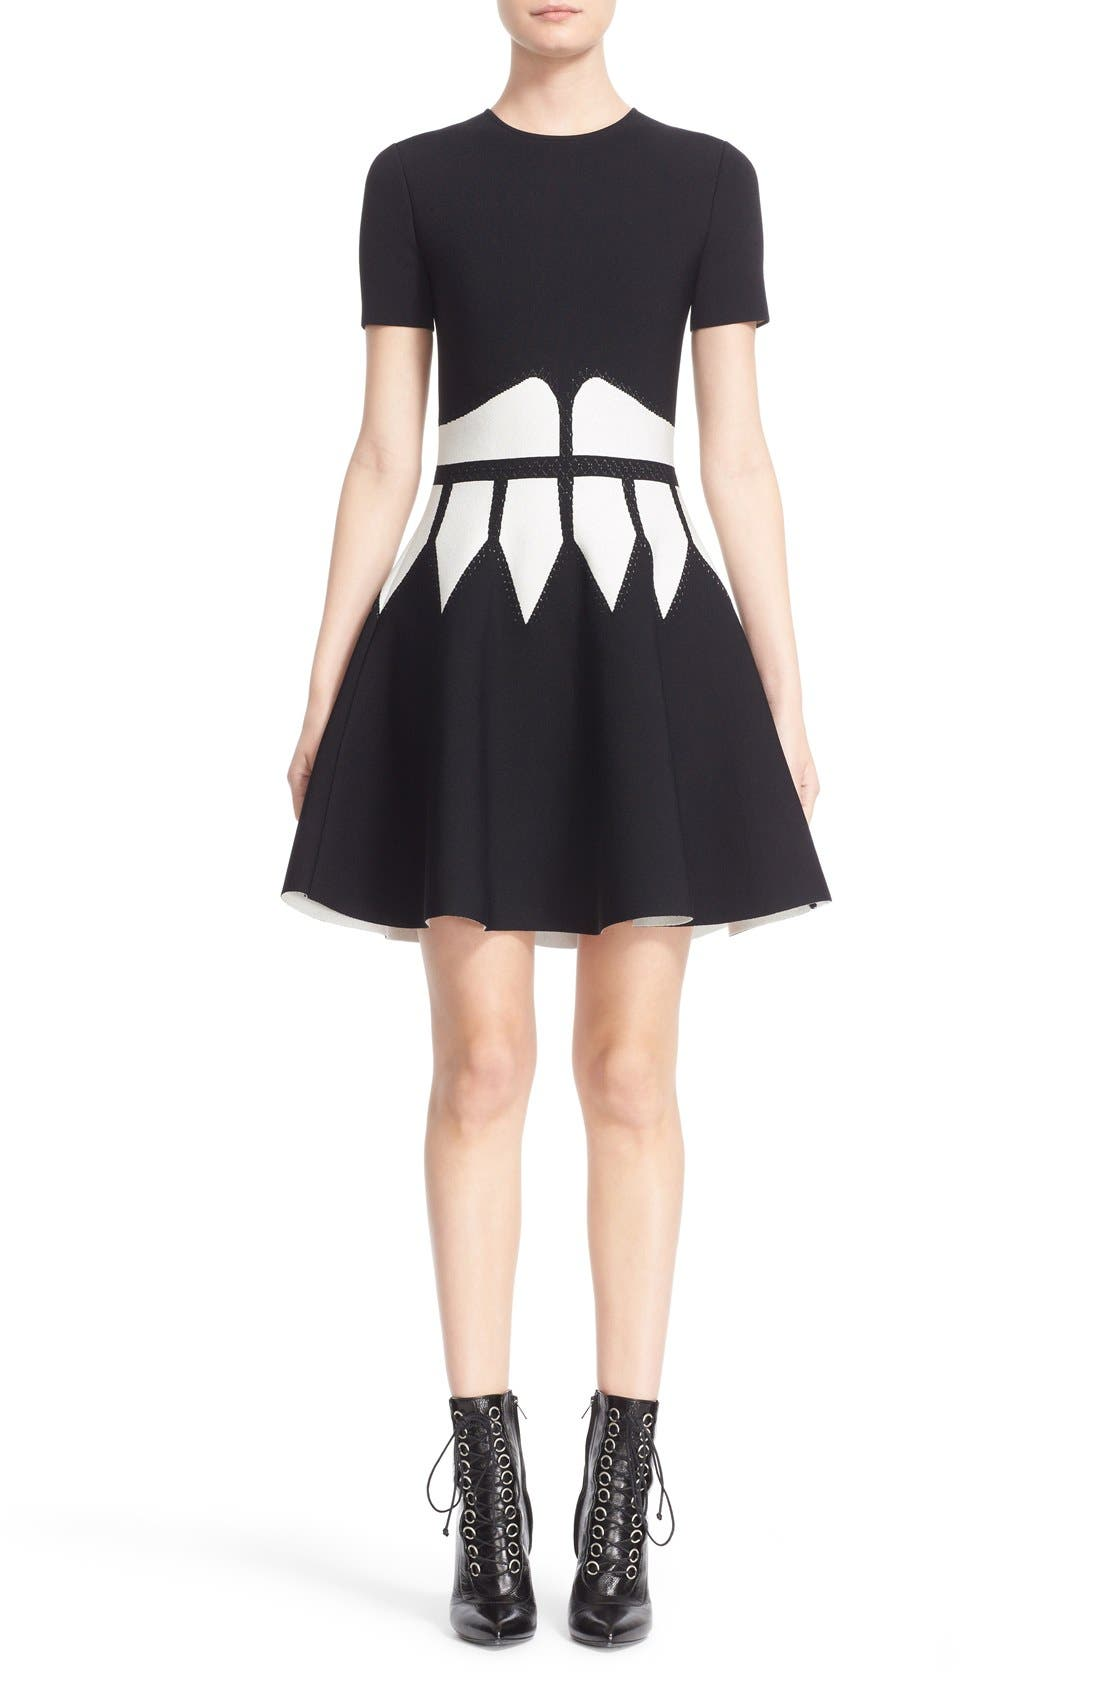 Main Image - Alexander McQueen Intarsia Knit Fit & Flare Dress